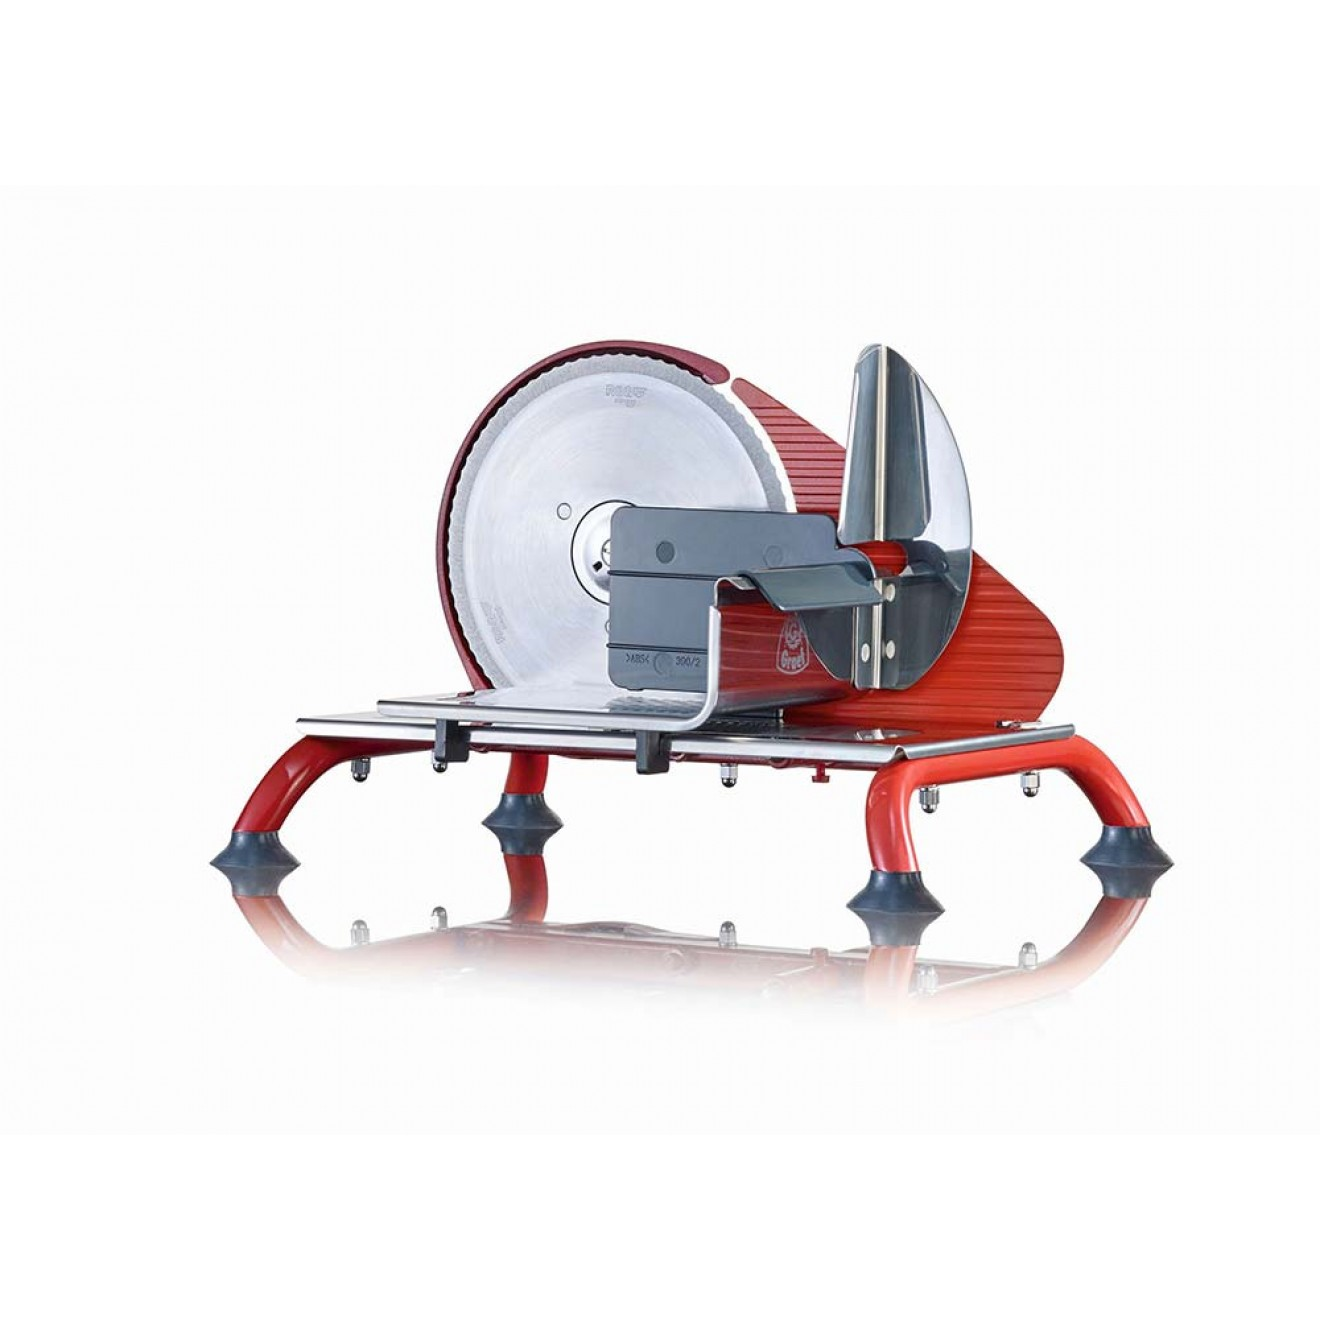 Graef H93 manually operated slicer